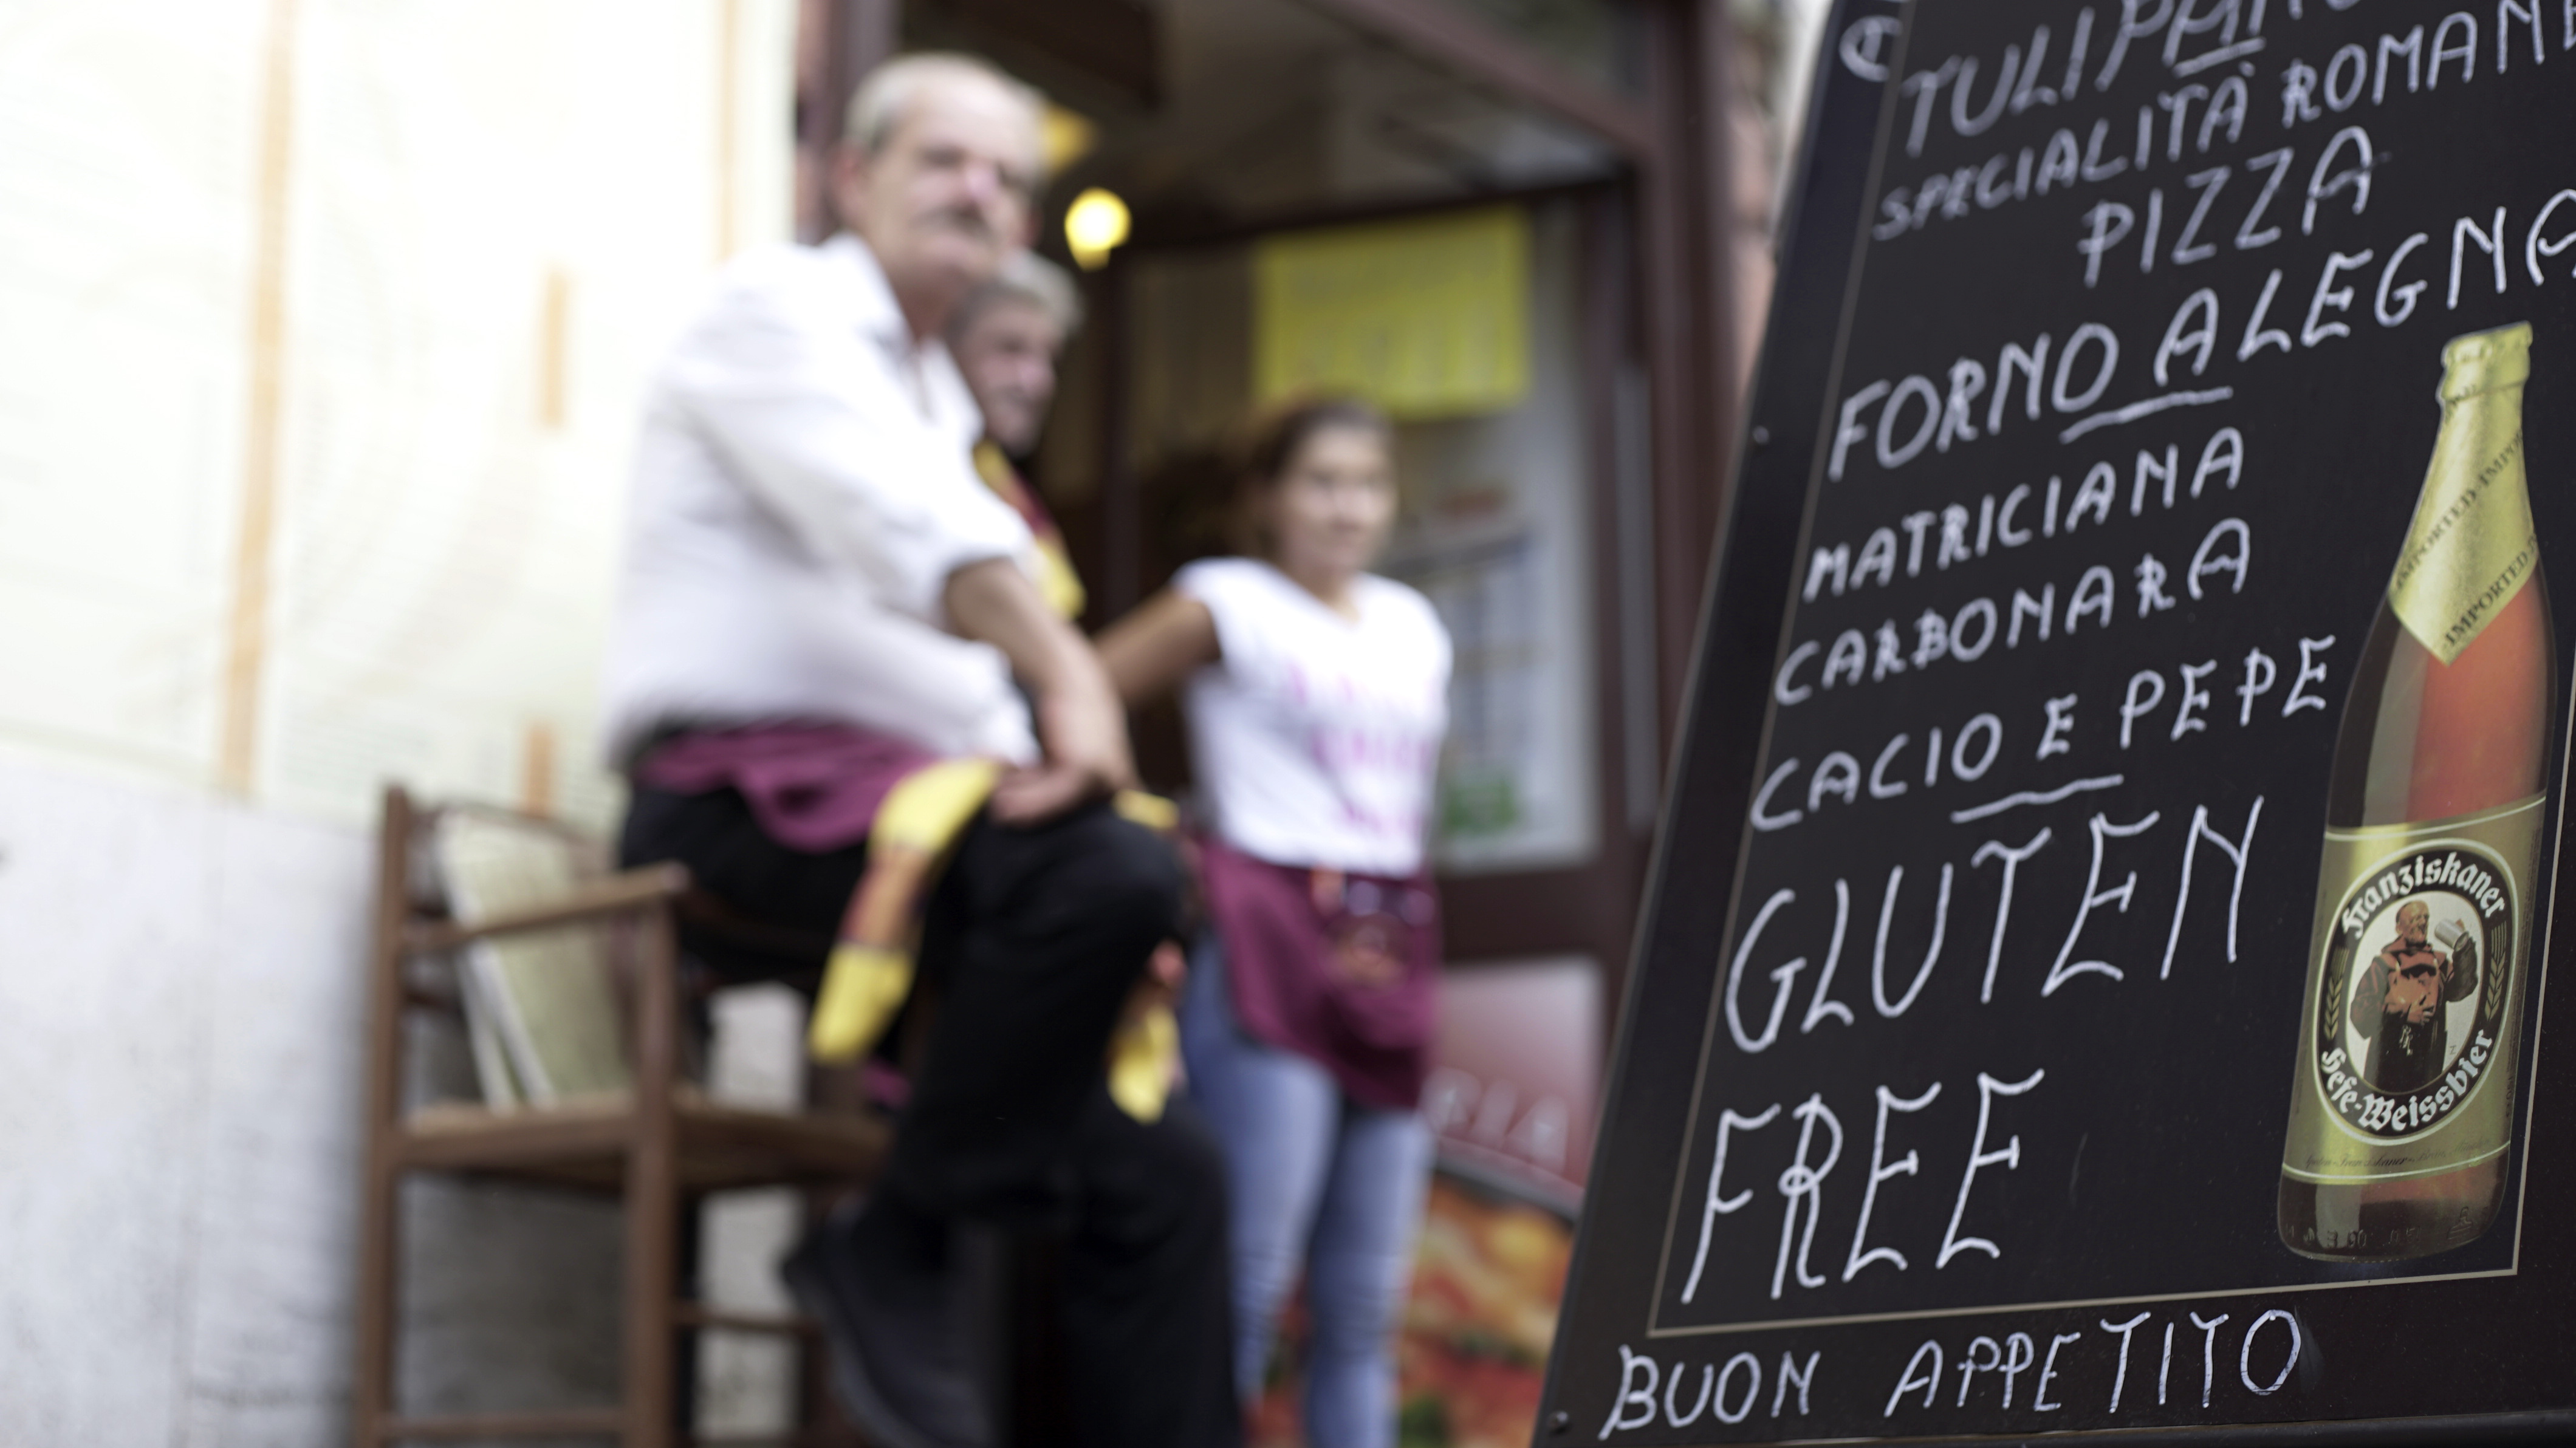 Italy, Land Of Pizza And Pasta, Is Gluten-Free Friendly